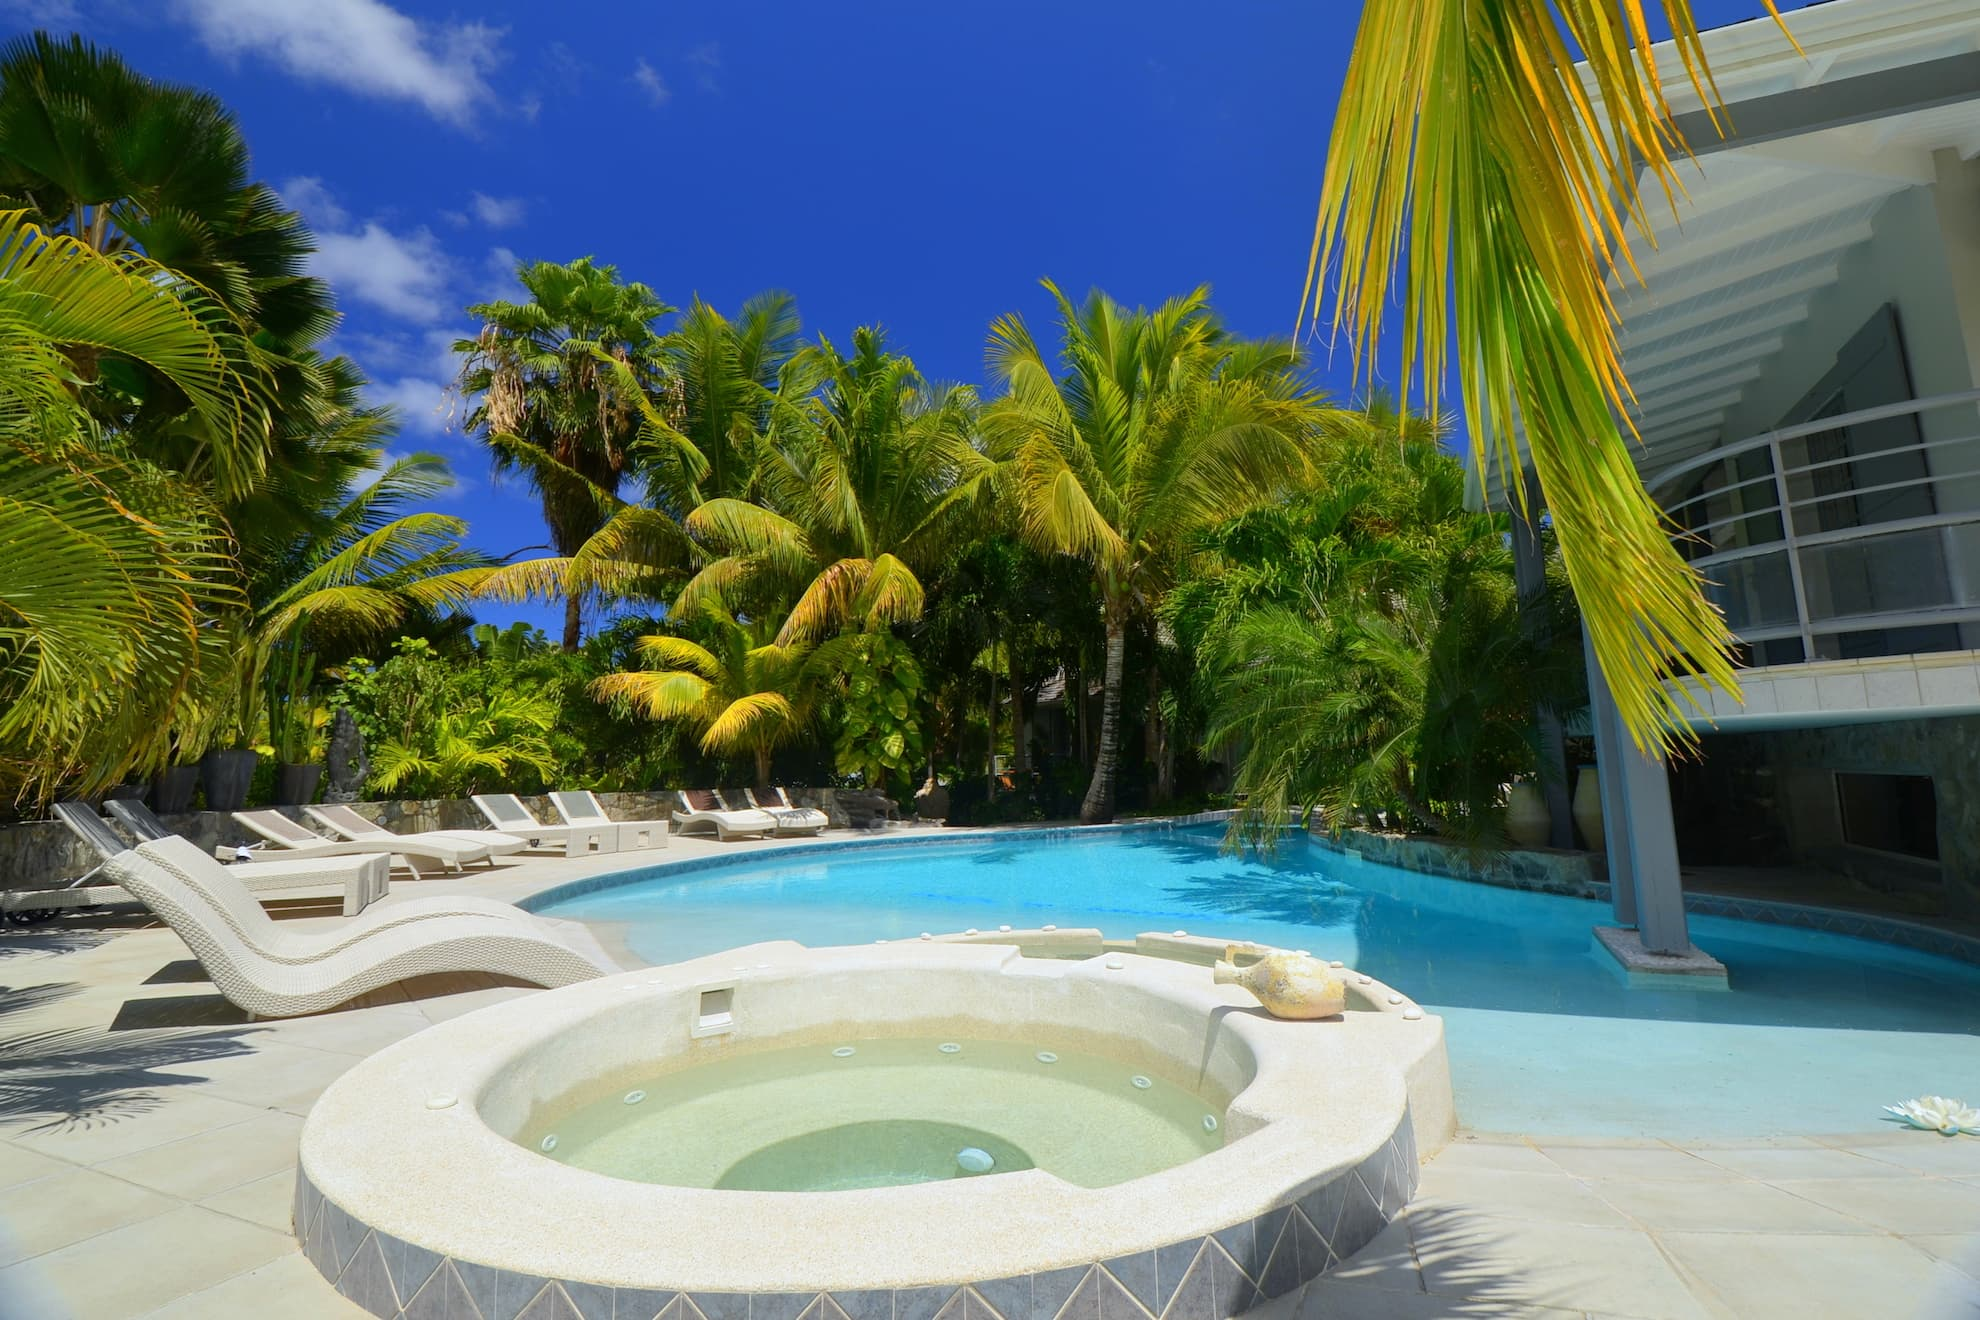 Jacuzzi and swimming pool in the heart of the tropical garden